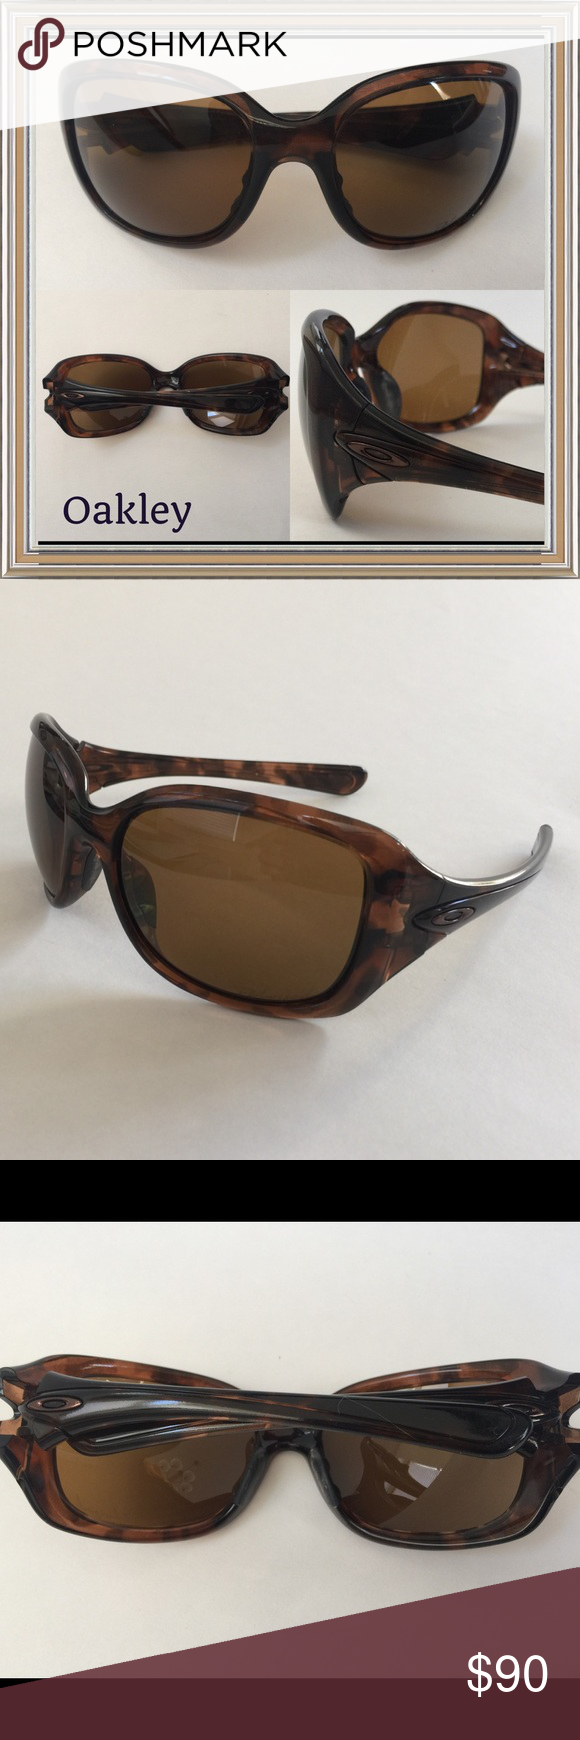 507d29f731a Pre-owned like new Oakley brand sunglasses Pre-owned Oakley Necessity  Sunglasses- Tortoise - bronze polarized. 009122-06. Worn only a few times